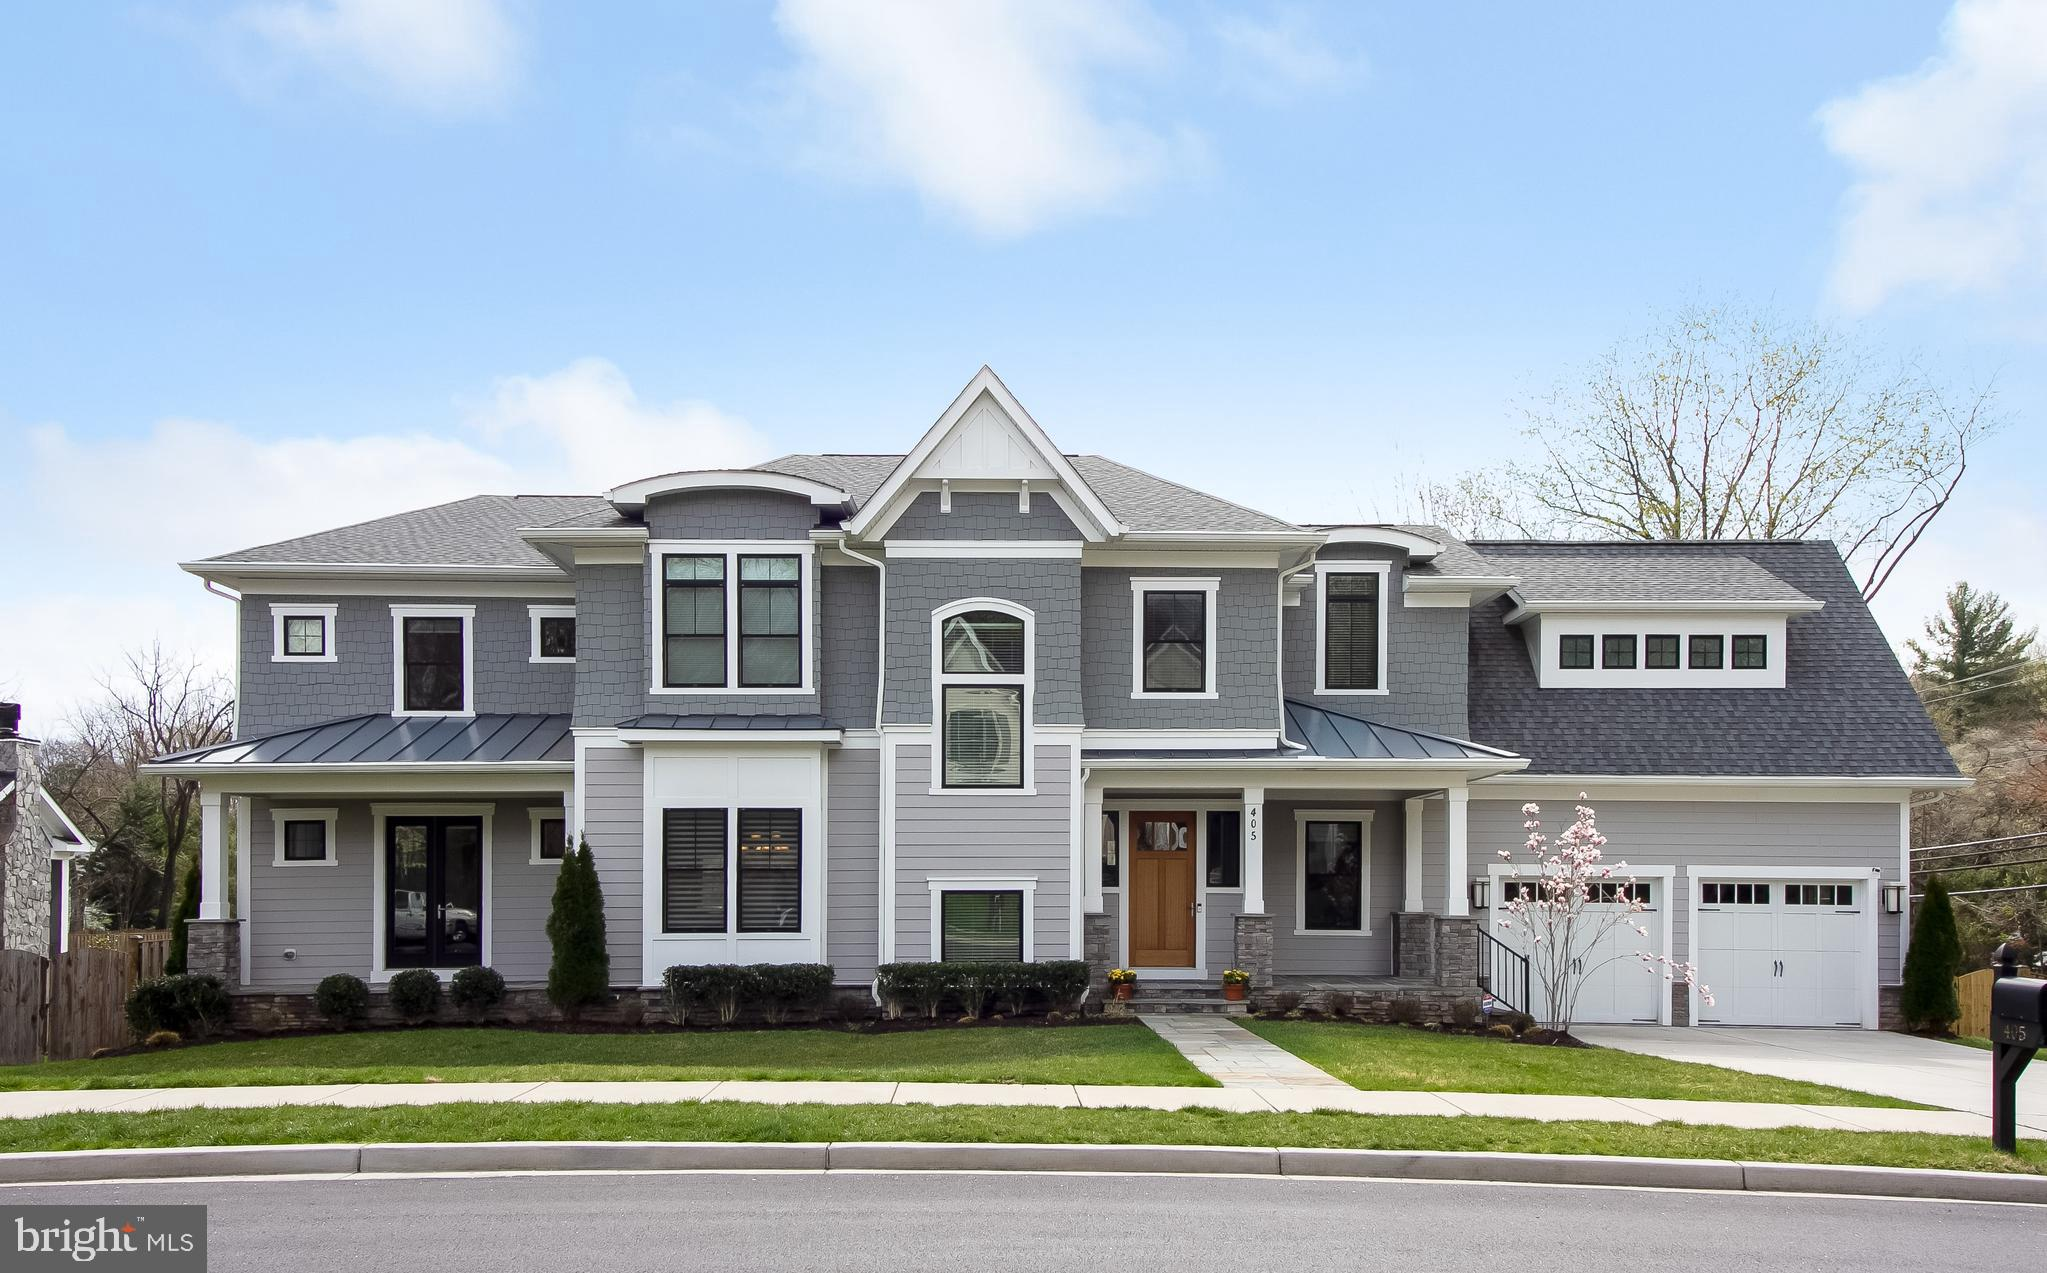 Spectacular custom built home located mins from downtown Vienna. Over 7118 sq ft of open living space. 6 BR, 6.5 BA, 10 ft ceilings. Gourmet kitchen w/high end appliances, sub-zero refrigerator and Wolf gas range with sealed burners and ovens, butler's pantry. Main level in-law suite w/ full ba. Great room with gas fireplace. Master suite with huge walk in closet and custom shelving, gorgeous bathroom w/deck. Finished lower level w/rec room, theater, wine, wet bar & gym and guest suite. 3 car garage.